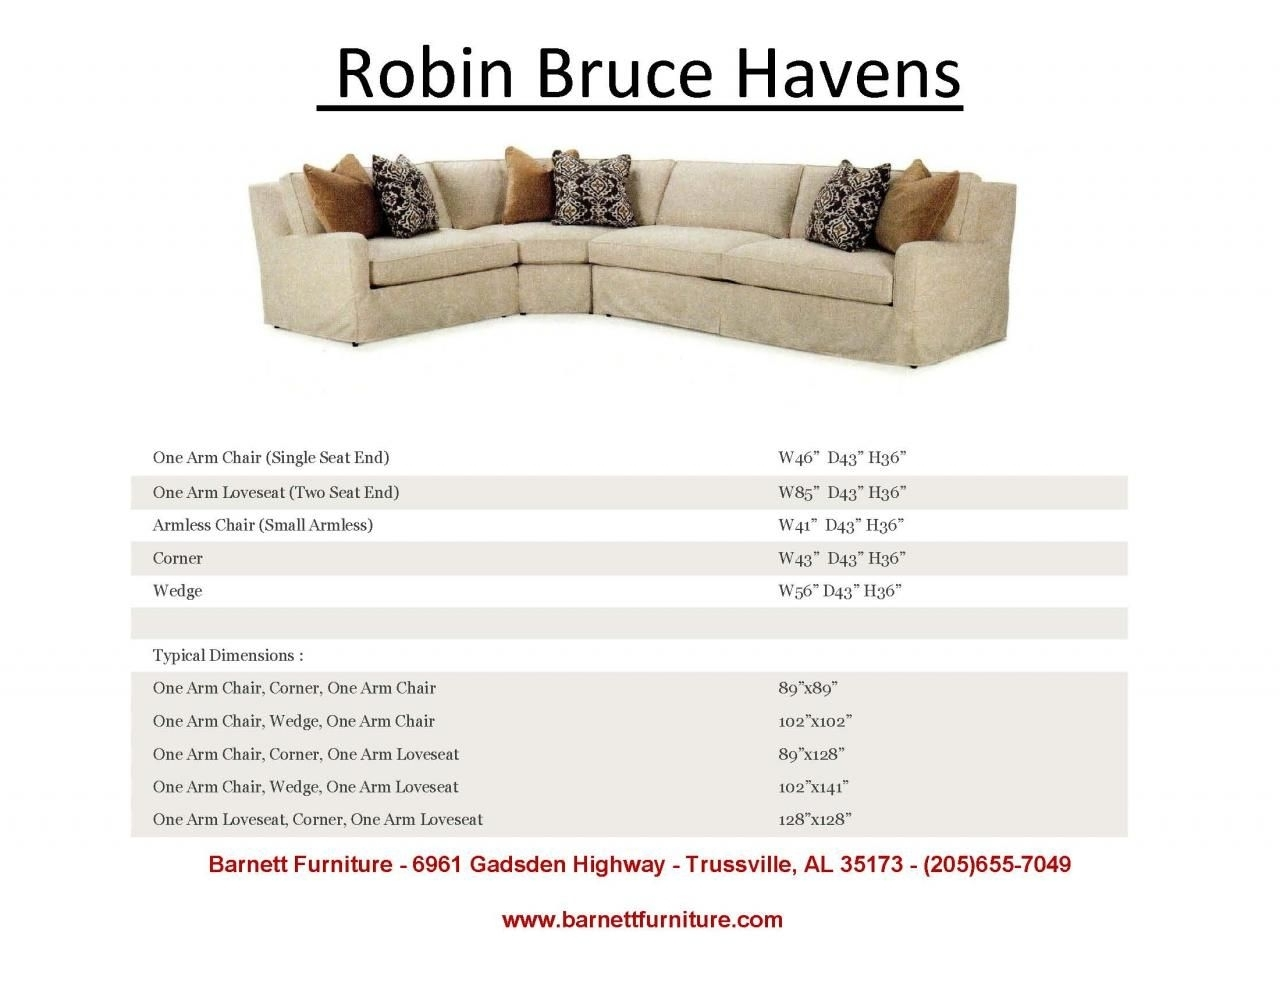 Robin Bruce Havens Slipcover Sectional. You Choose The Fabric And throughout Sectional Sofas at Birmingham Al (Image 11 of 15)